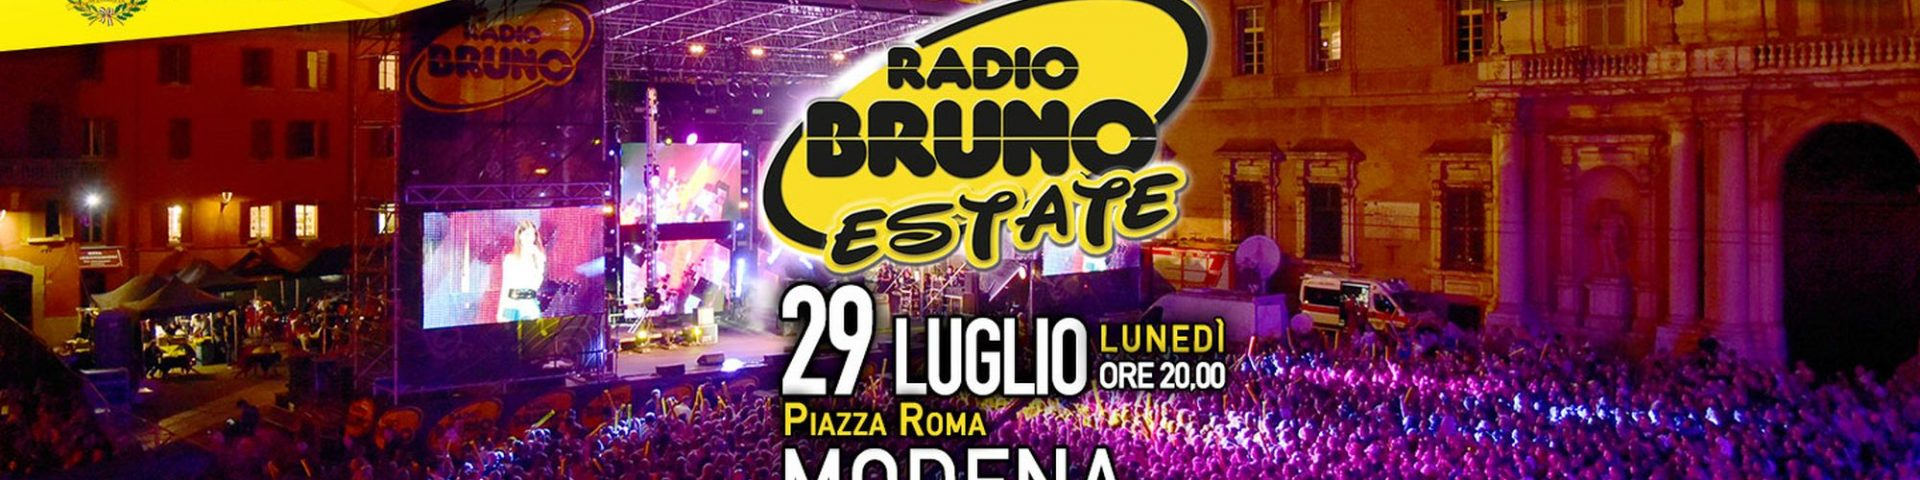 Radio Bruno Estate 2019 a Modena: scaletta e ordine di uscita